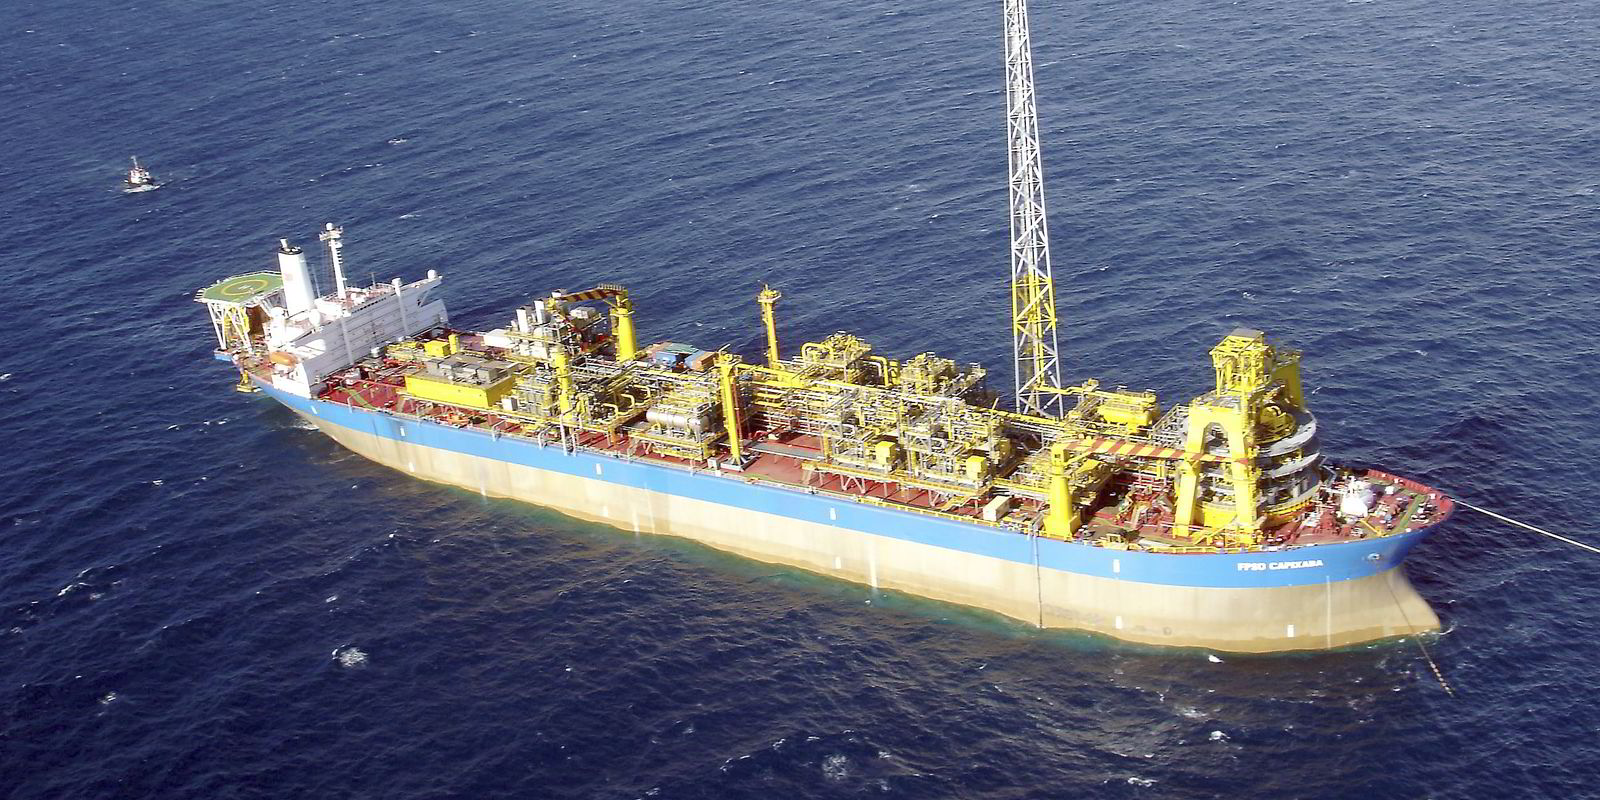 SBM Offshore secures deal with Brazilian authorities